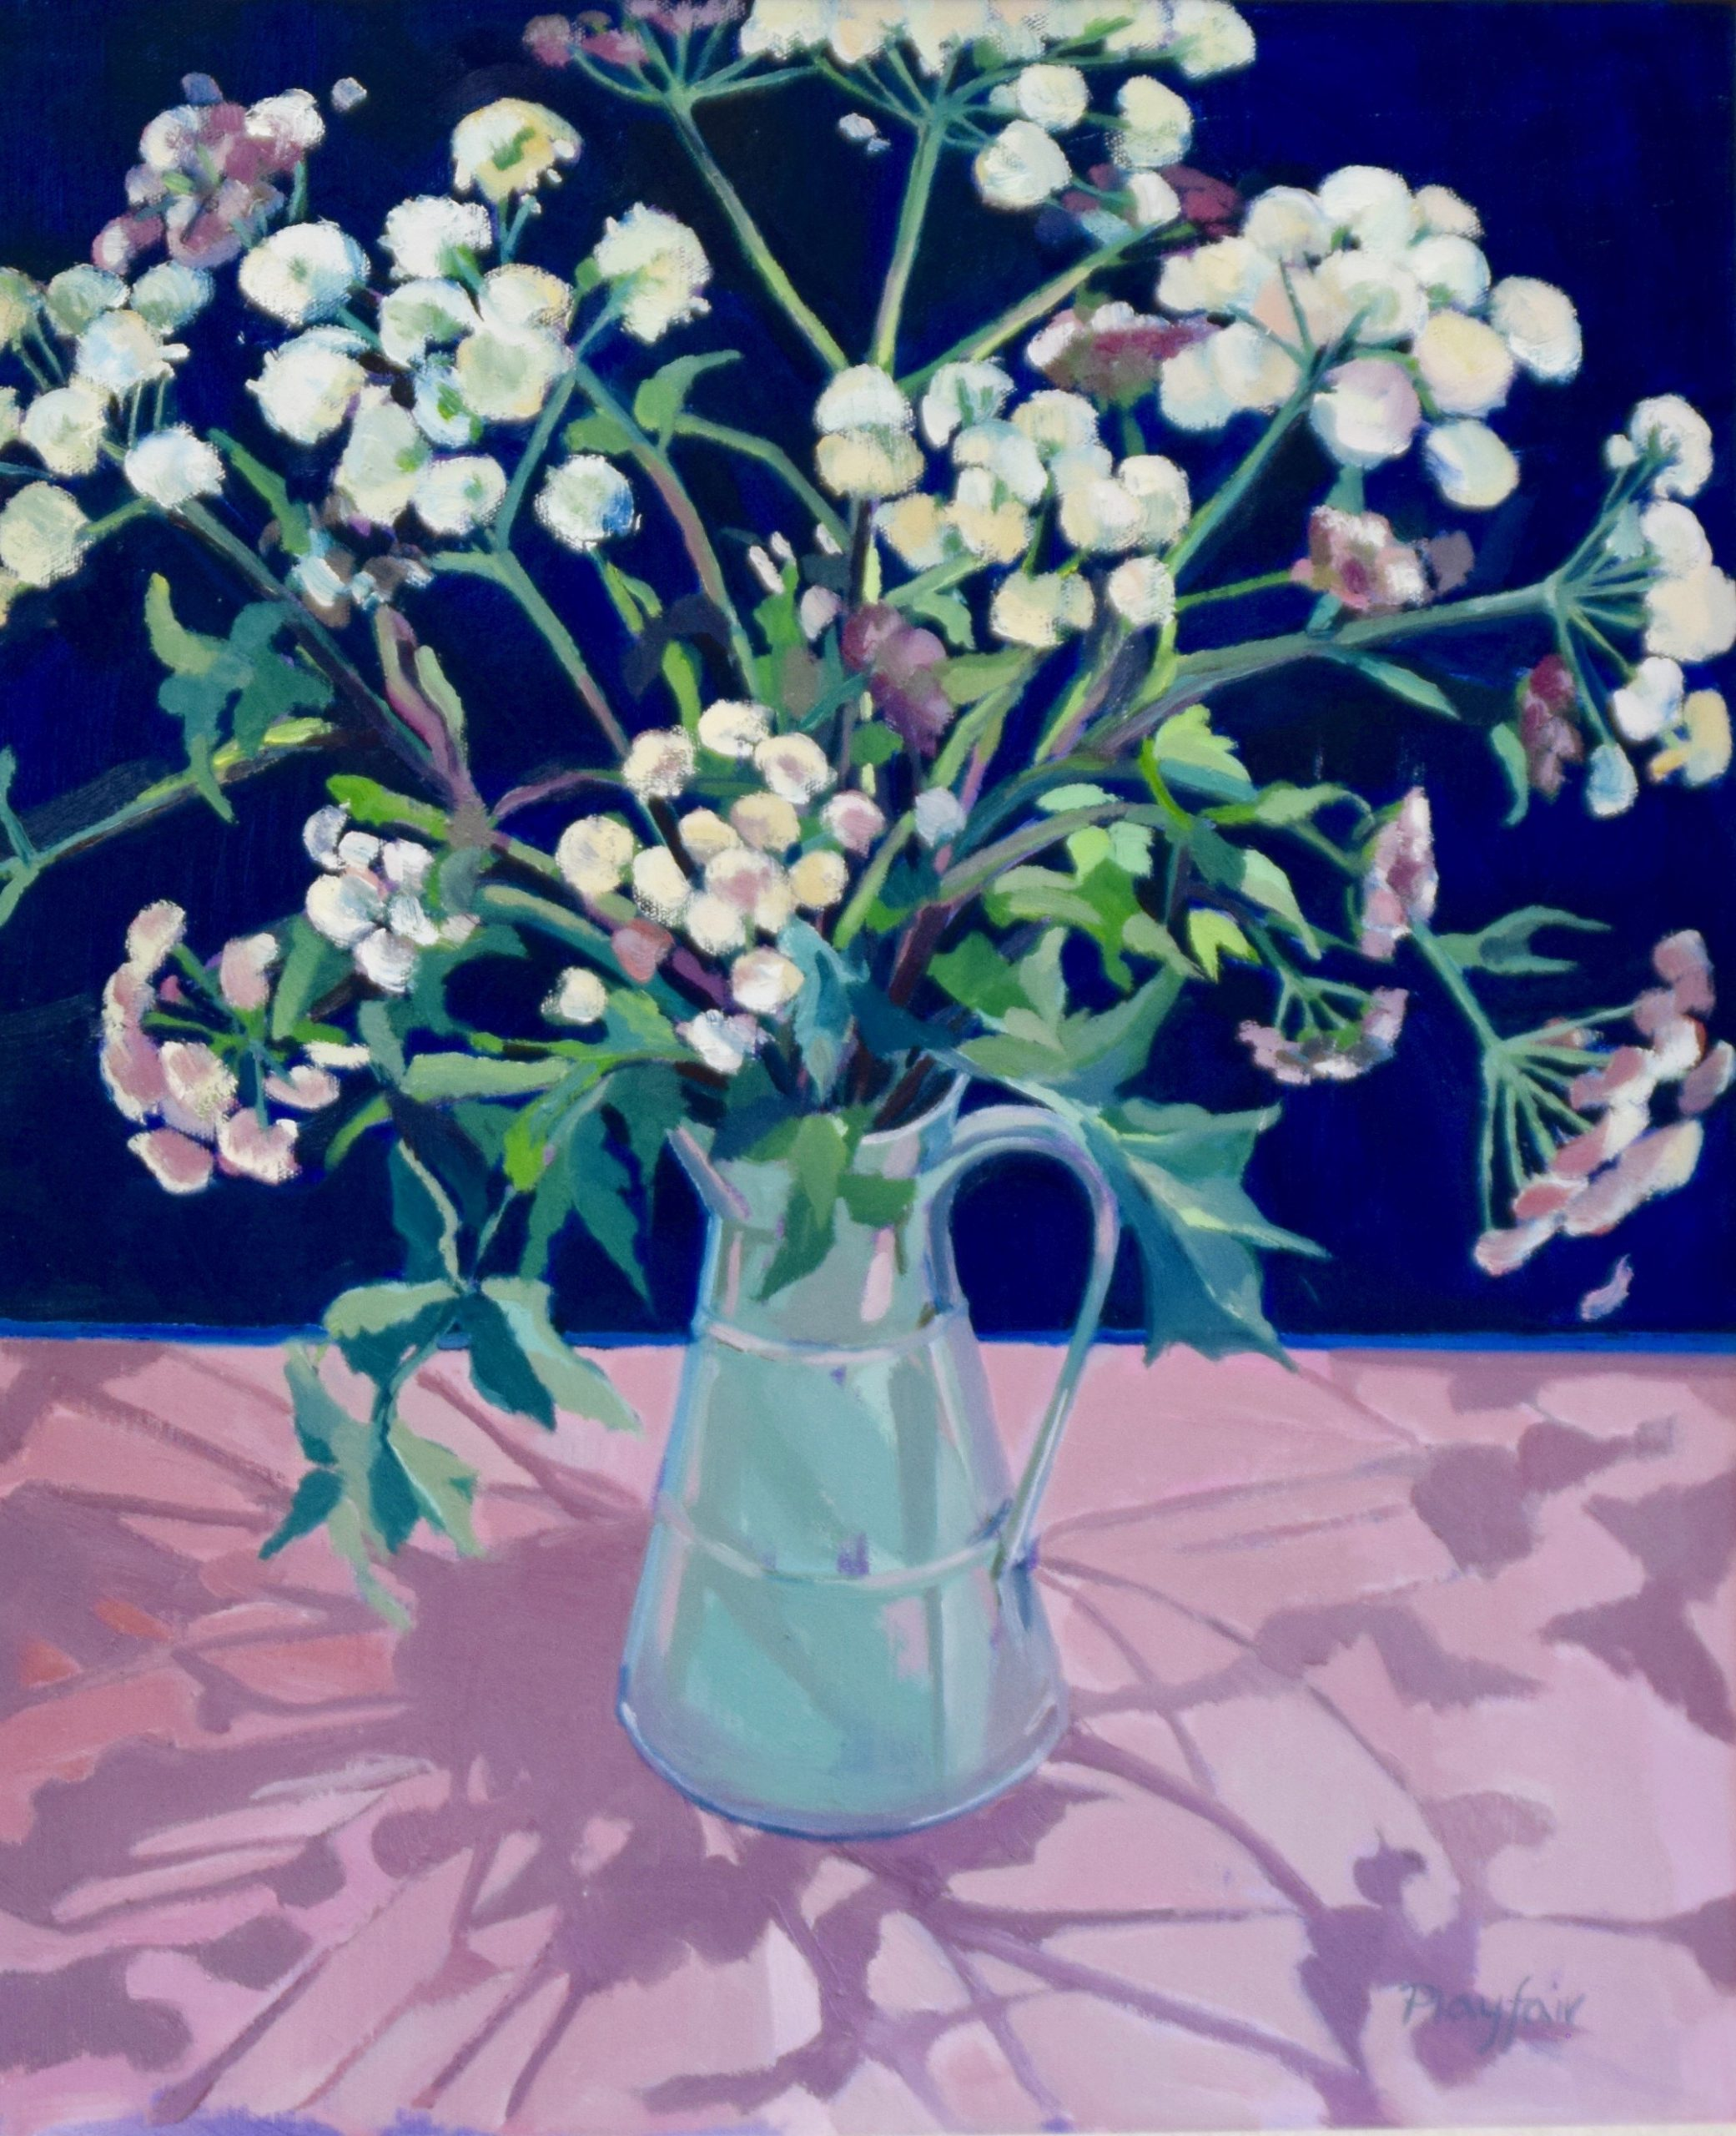 Annabel Playfair - Cowparsley - Oil - 24 x 20 inches